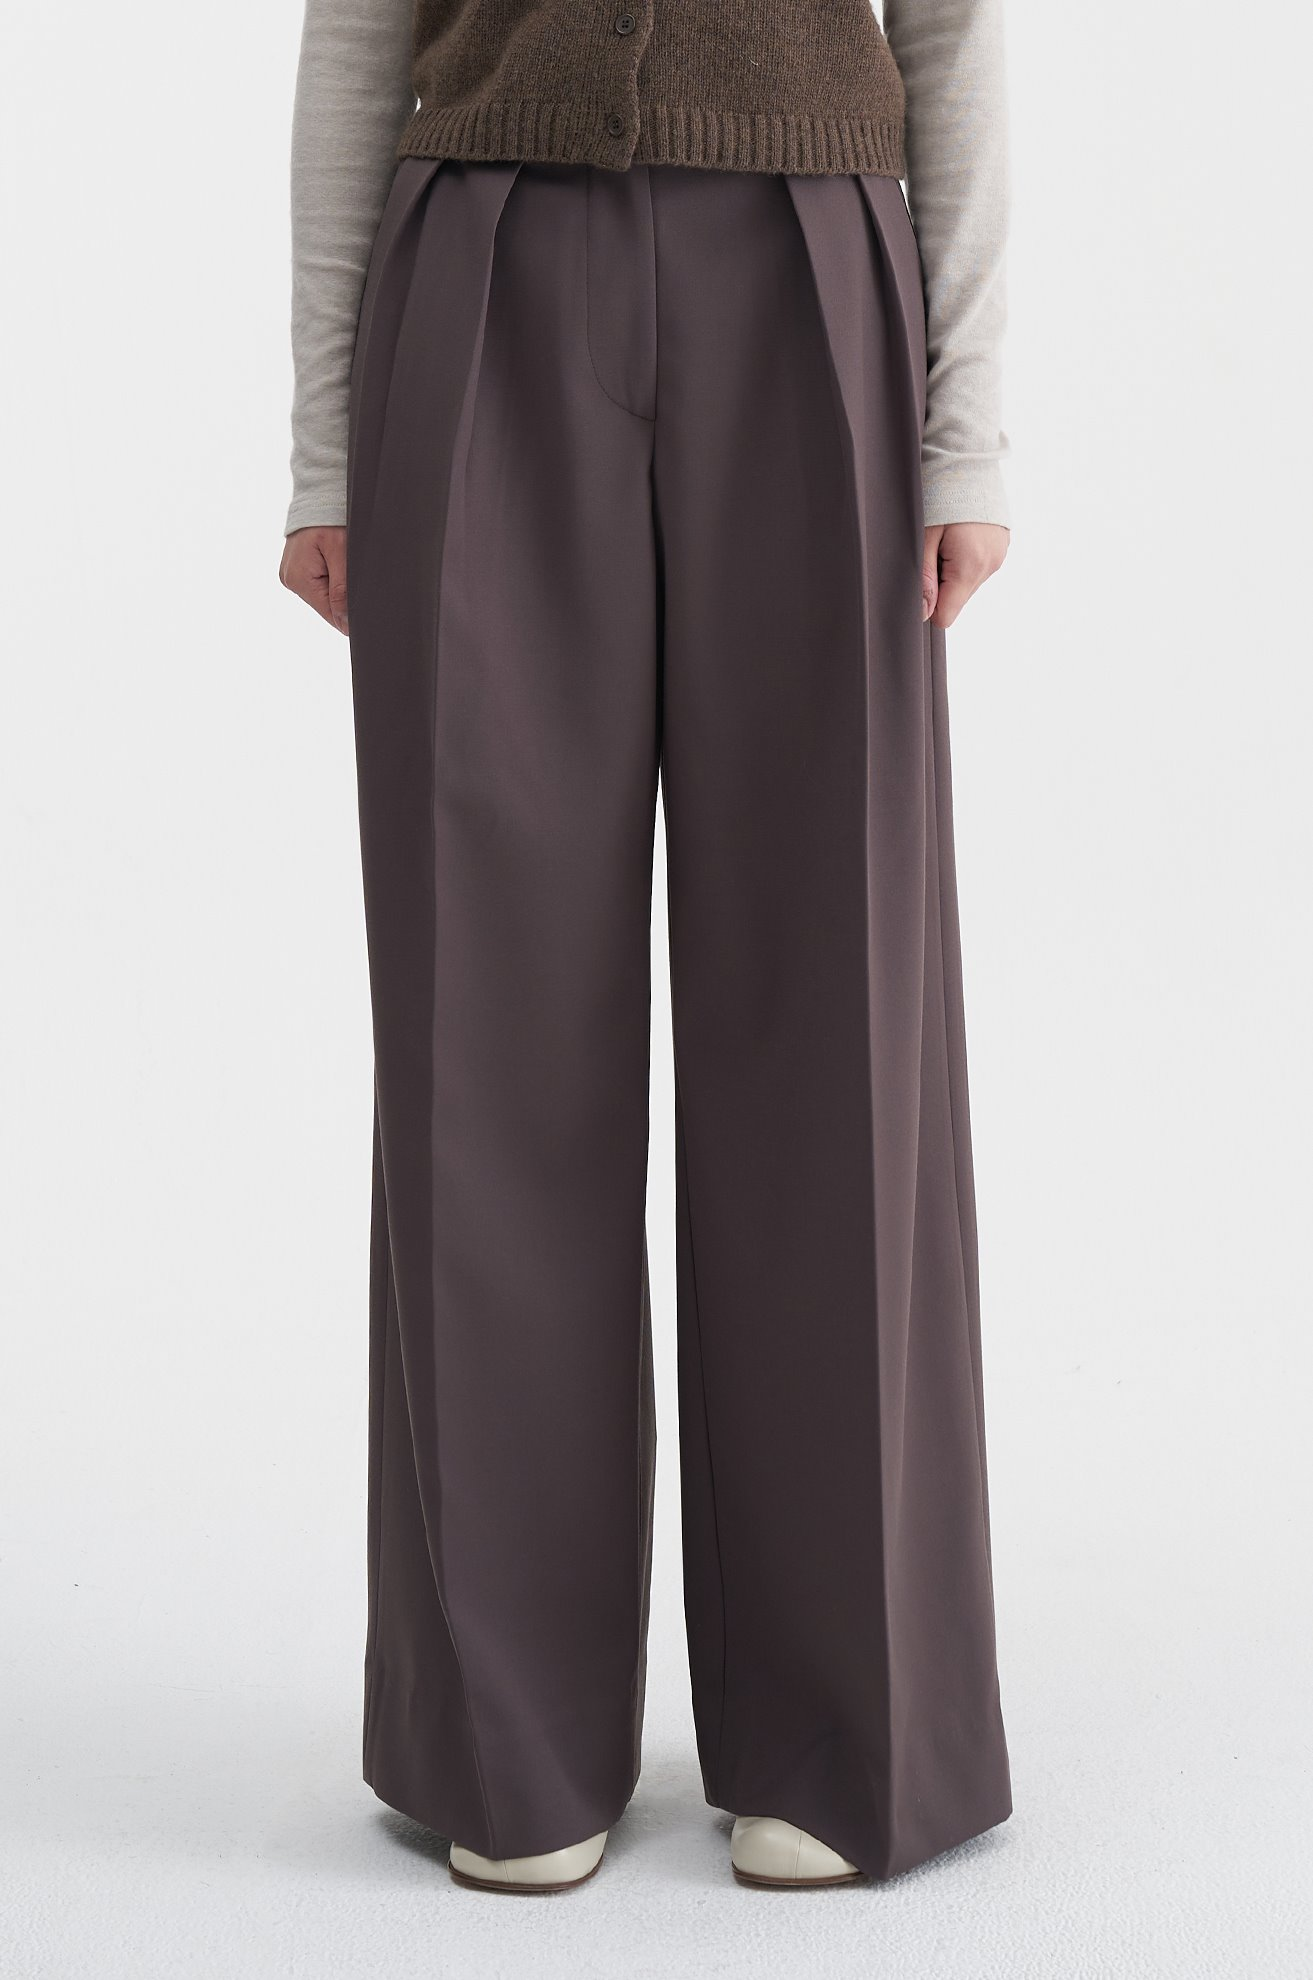 Two Pleat Wide Trouser (BROWN)ATELIER EDITION